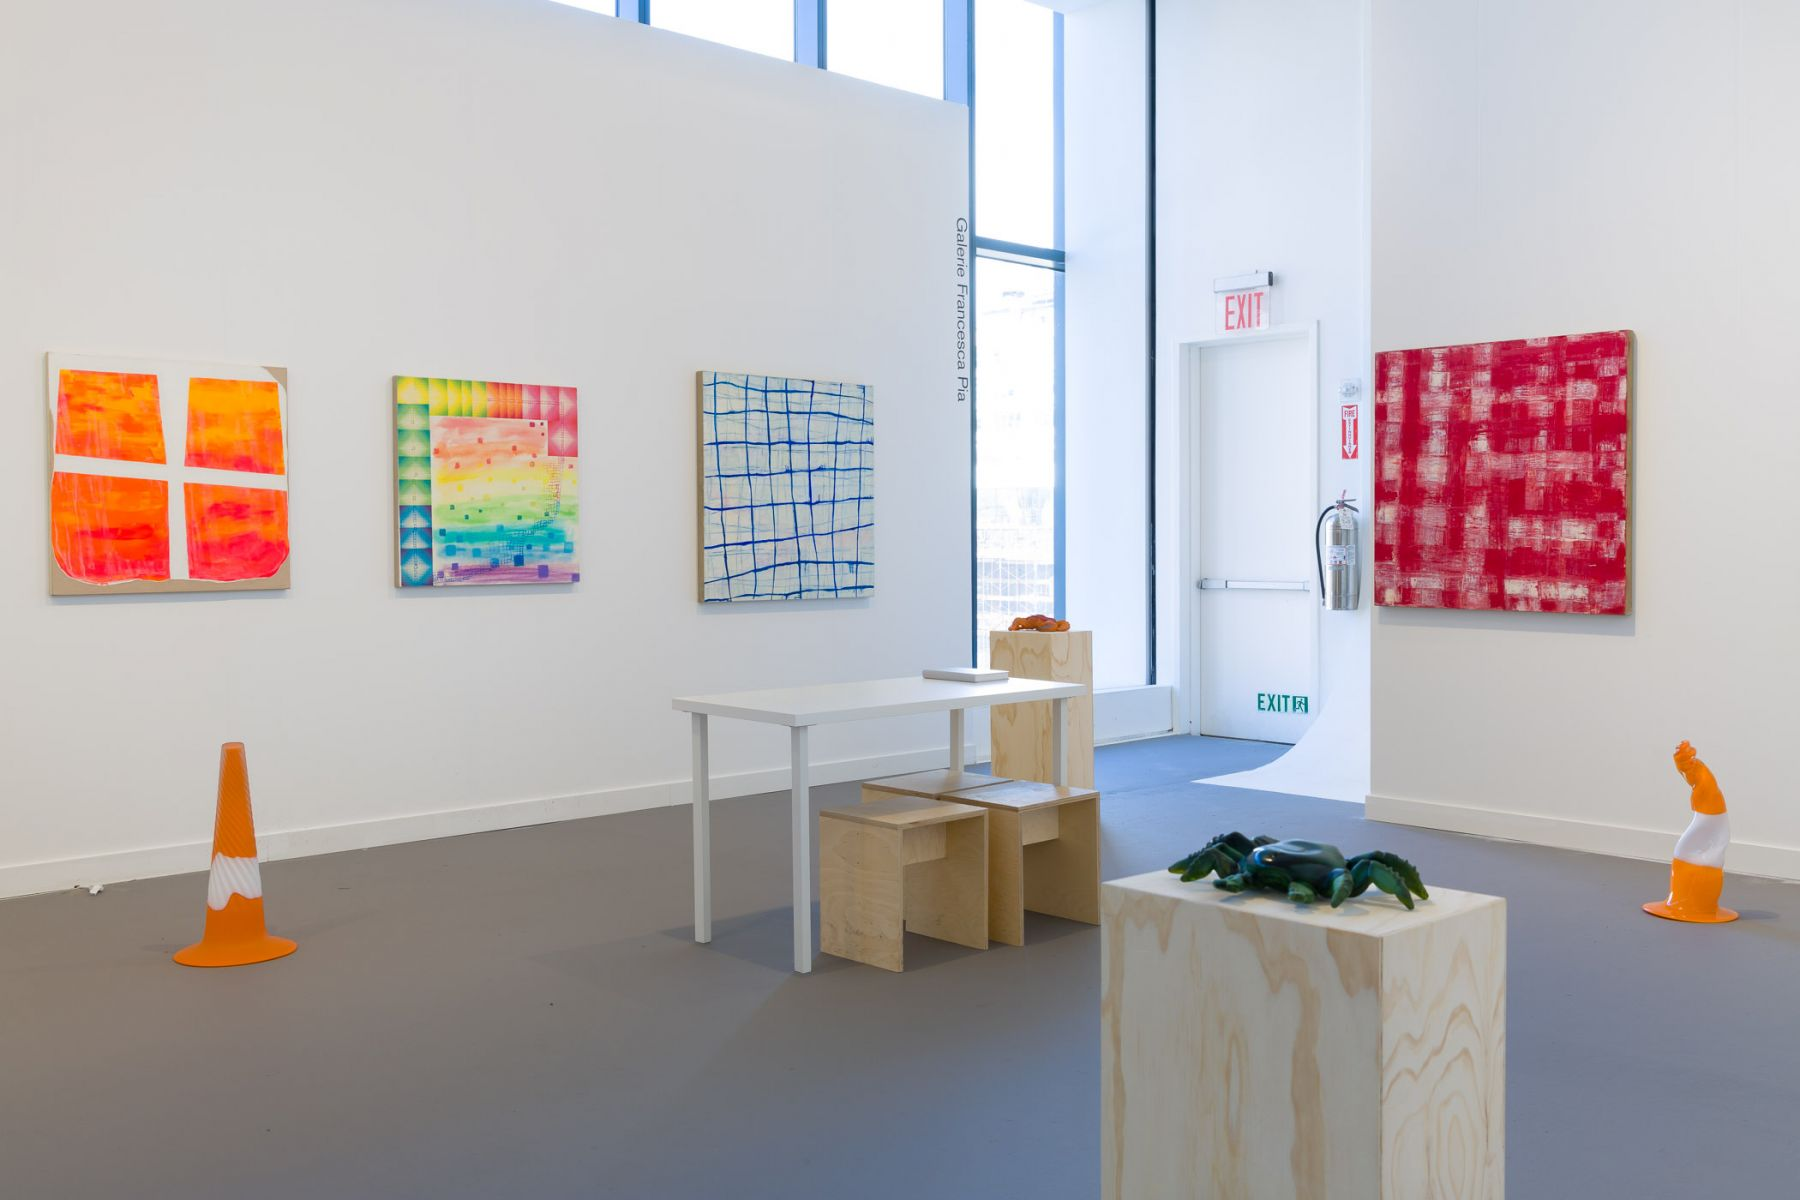 Exhibition view of Galerie Francesca Pia at Independent New York, 2018.